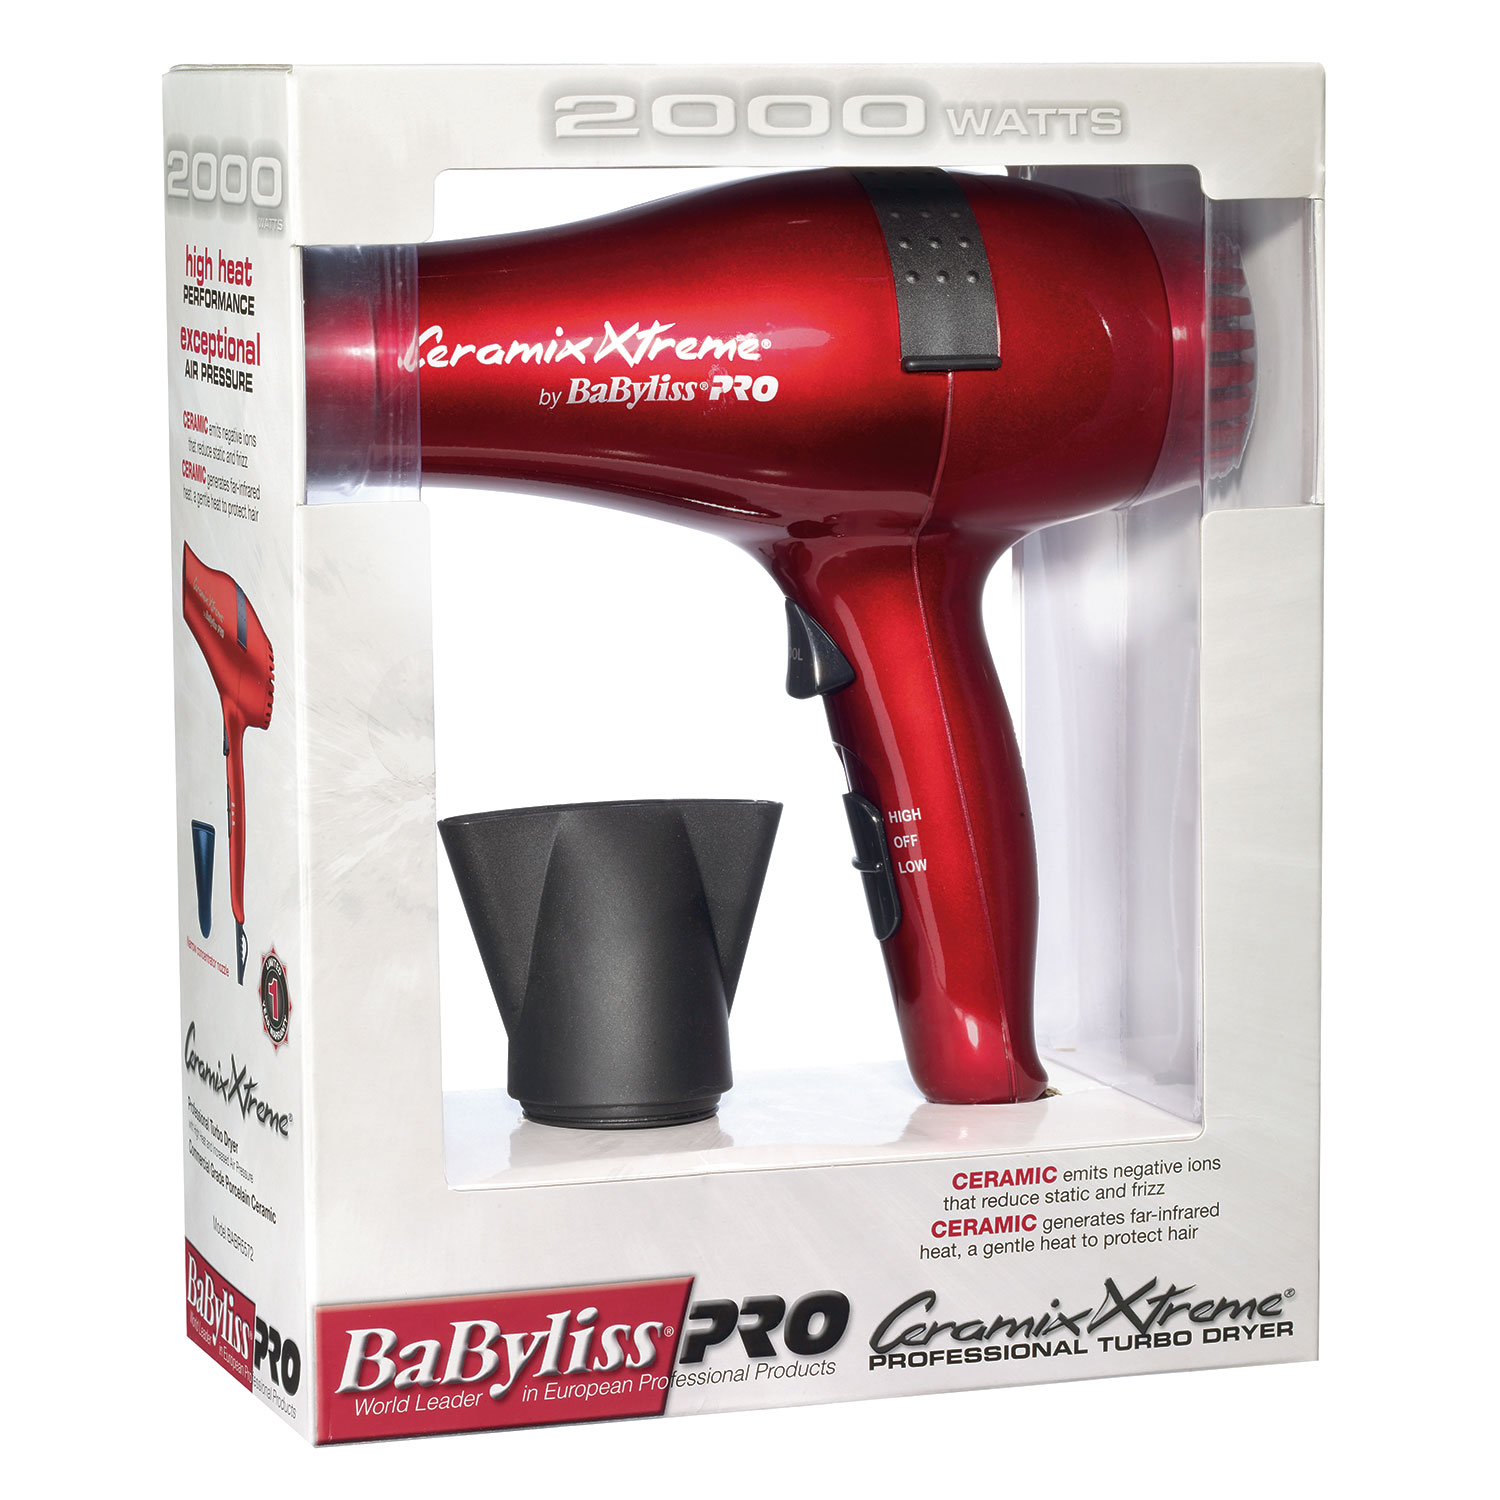 Image of BaByliss Pro Ceramix Xtreme RED Dryer #BABR5572